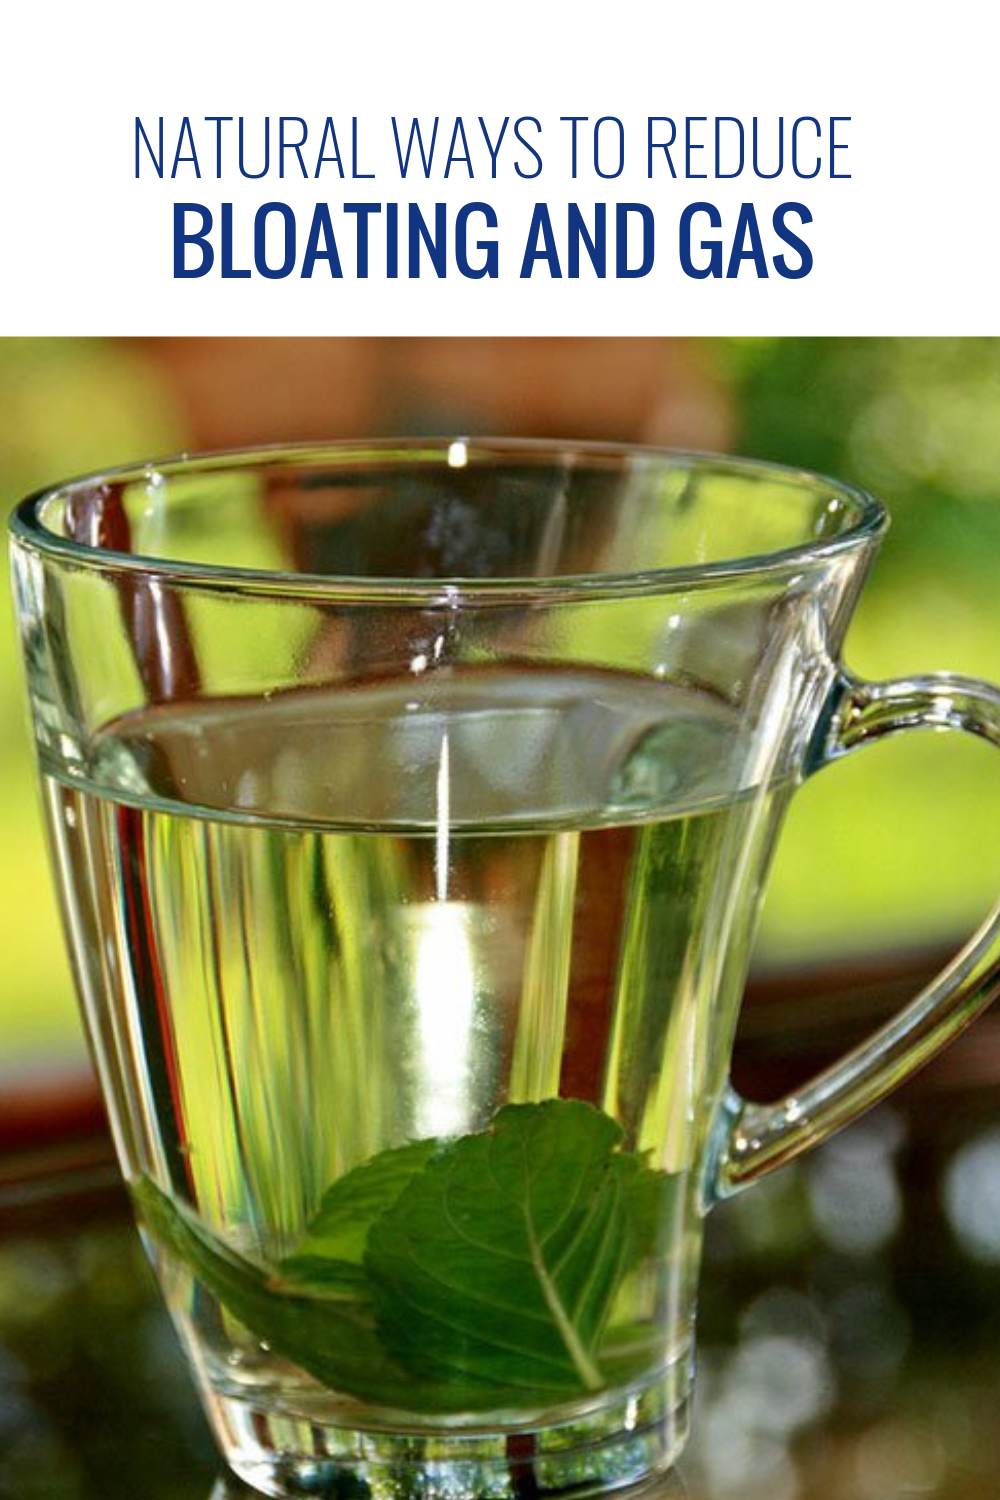 Natural Ways to Reduce Bloating and Gas